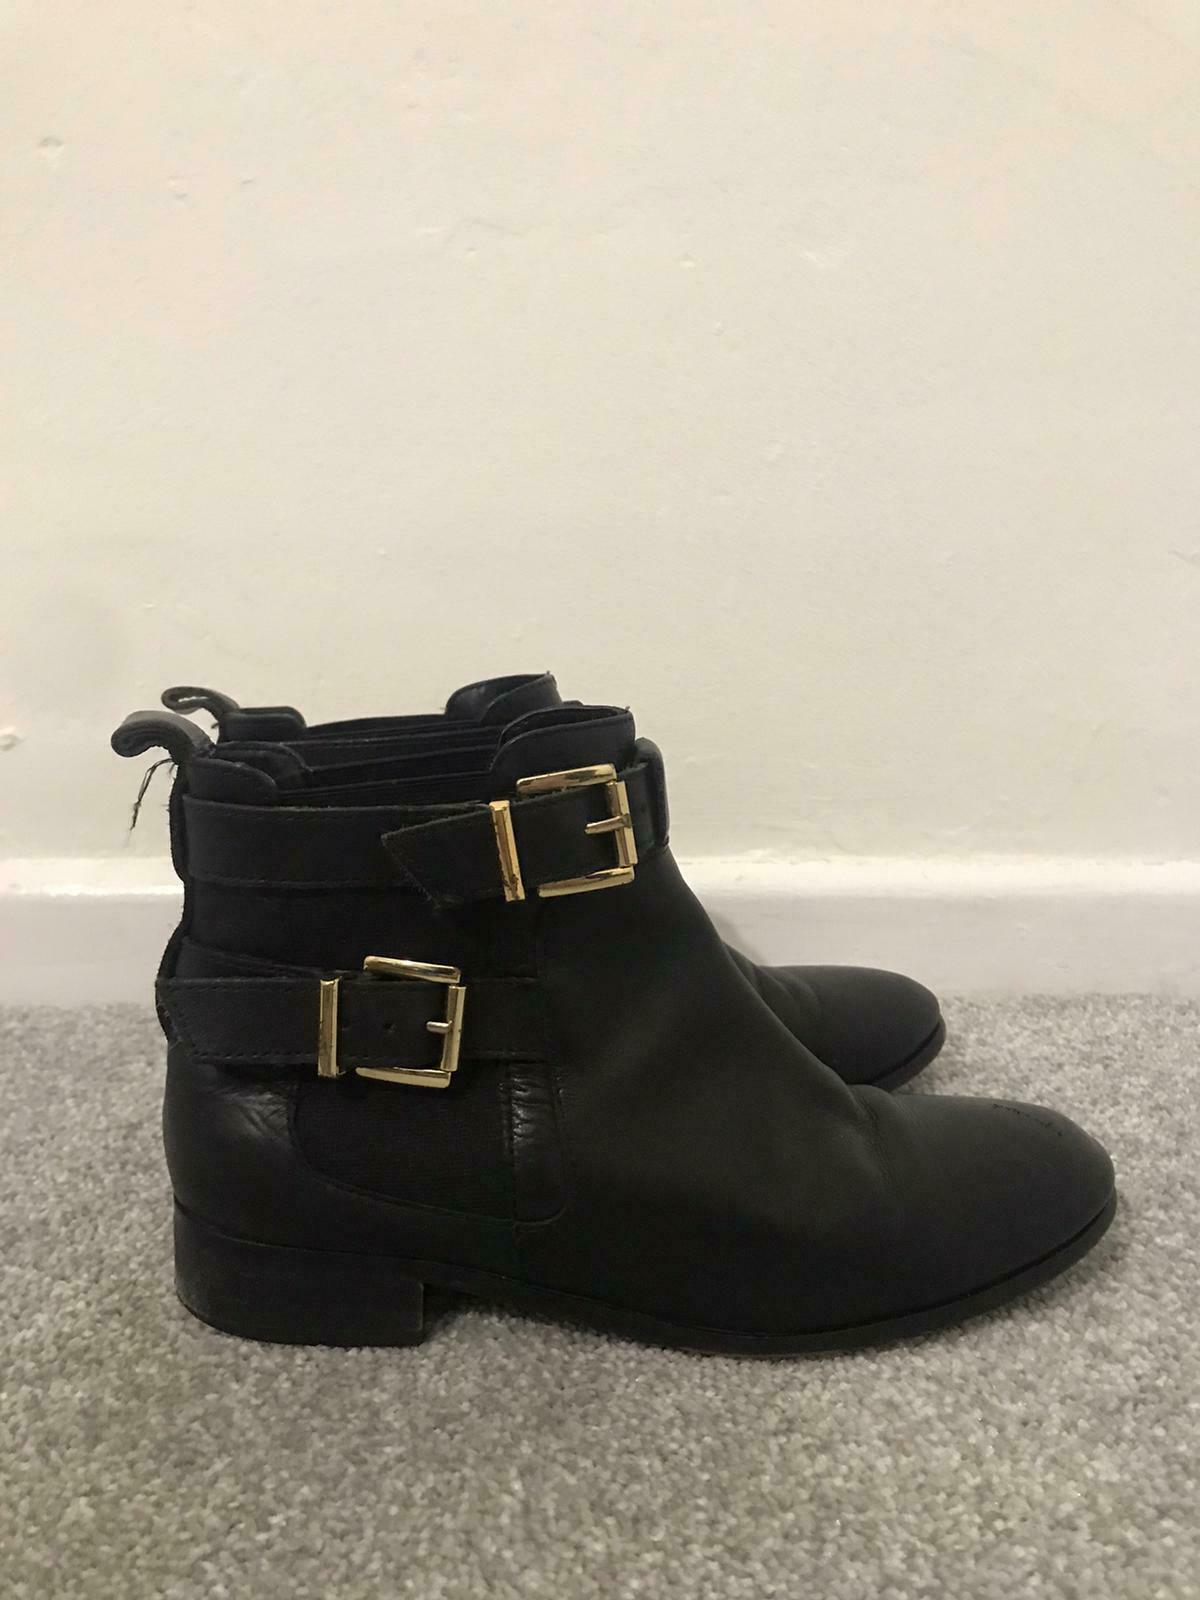 River Island Chelsea Boots Size 4 Black Leather Buckle Ankle Boots